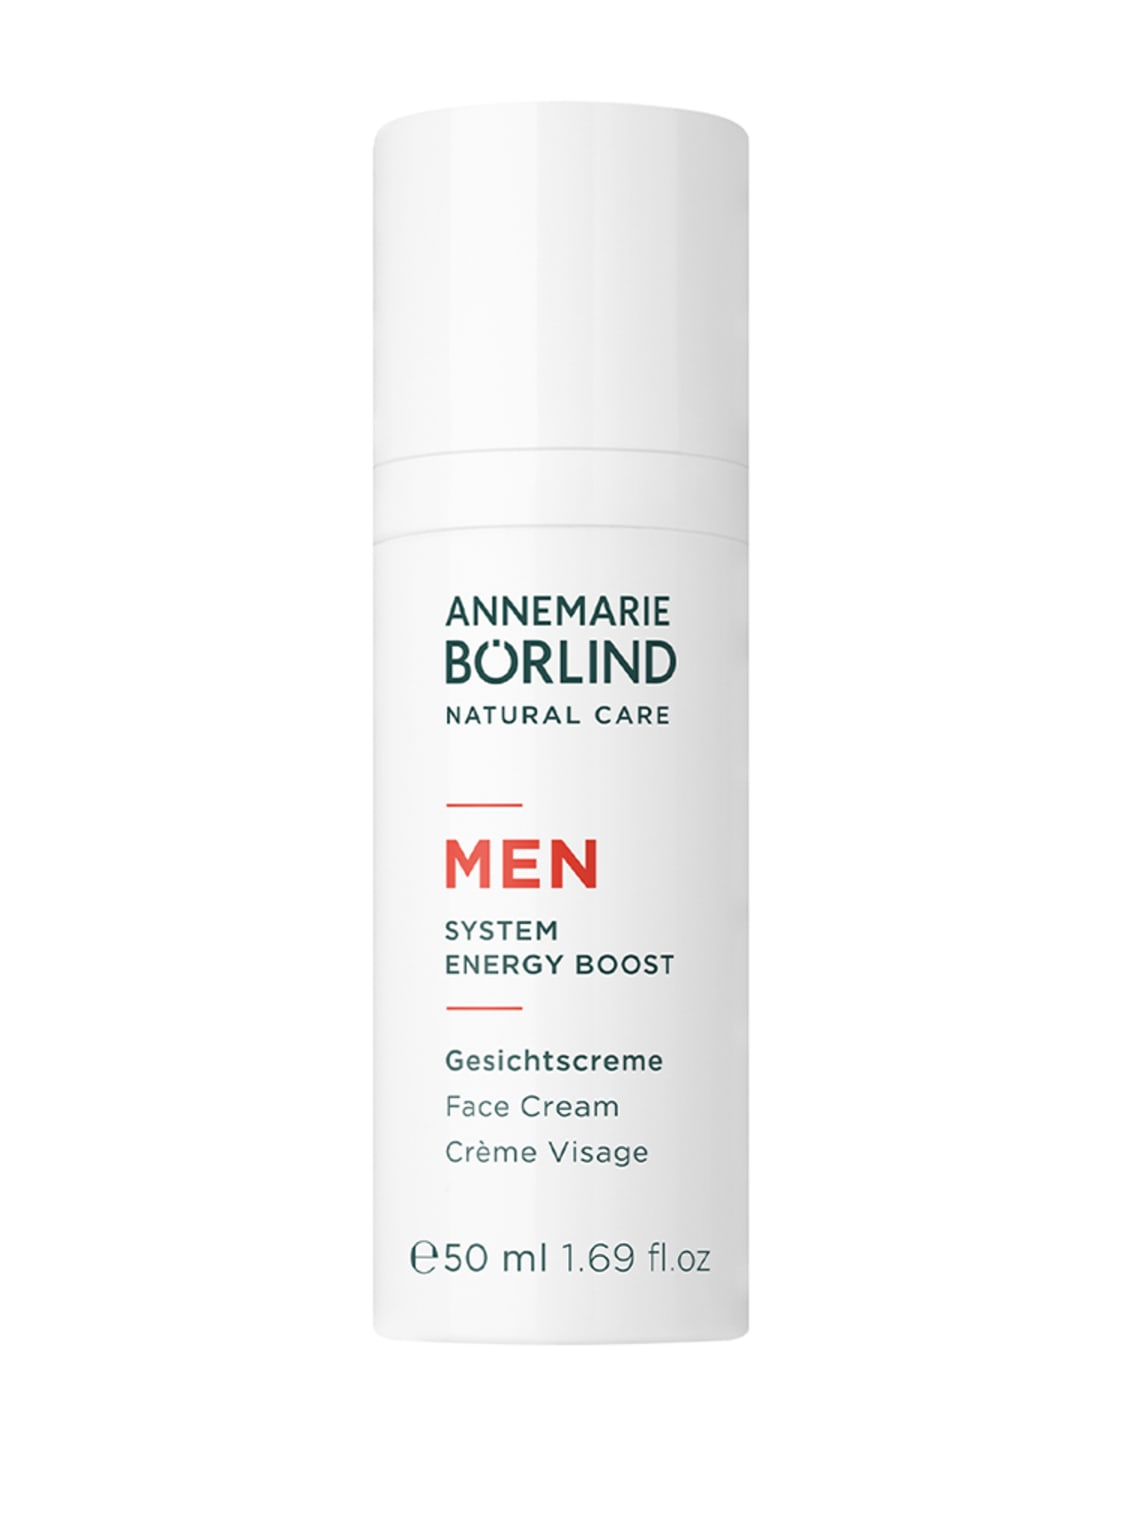 Annemarie Börlind Men Gesichtscreme 50 ml von ANNEMARIE BÖRLIND